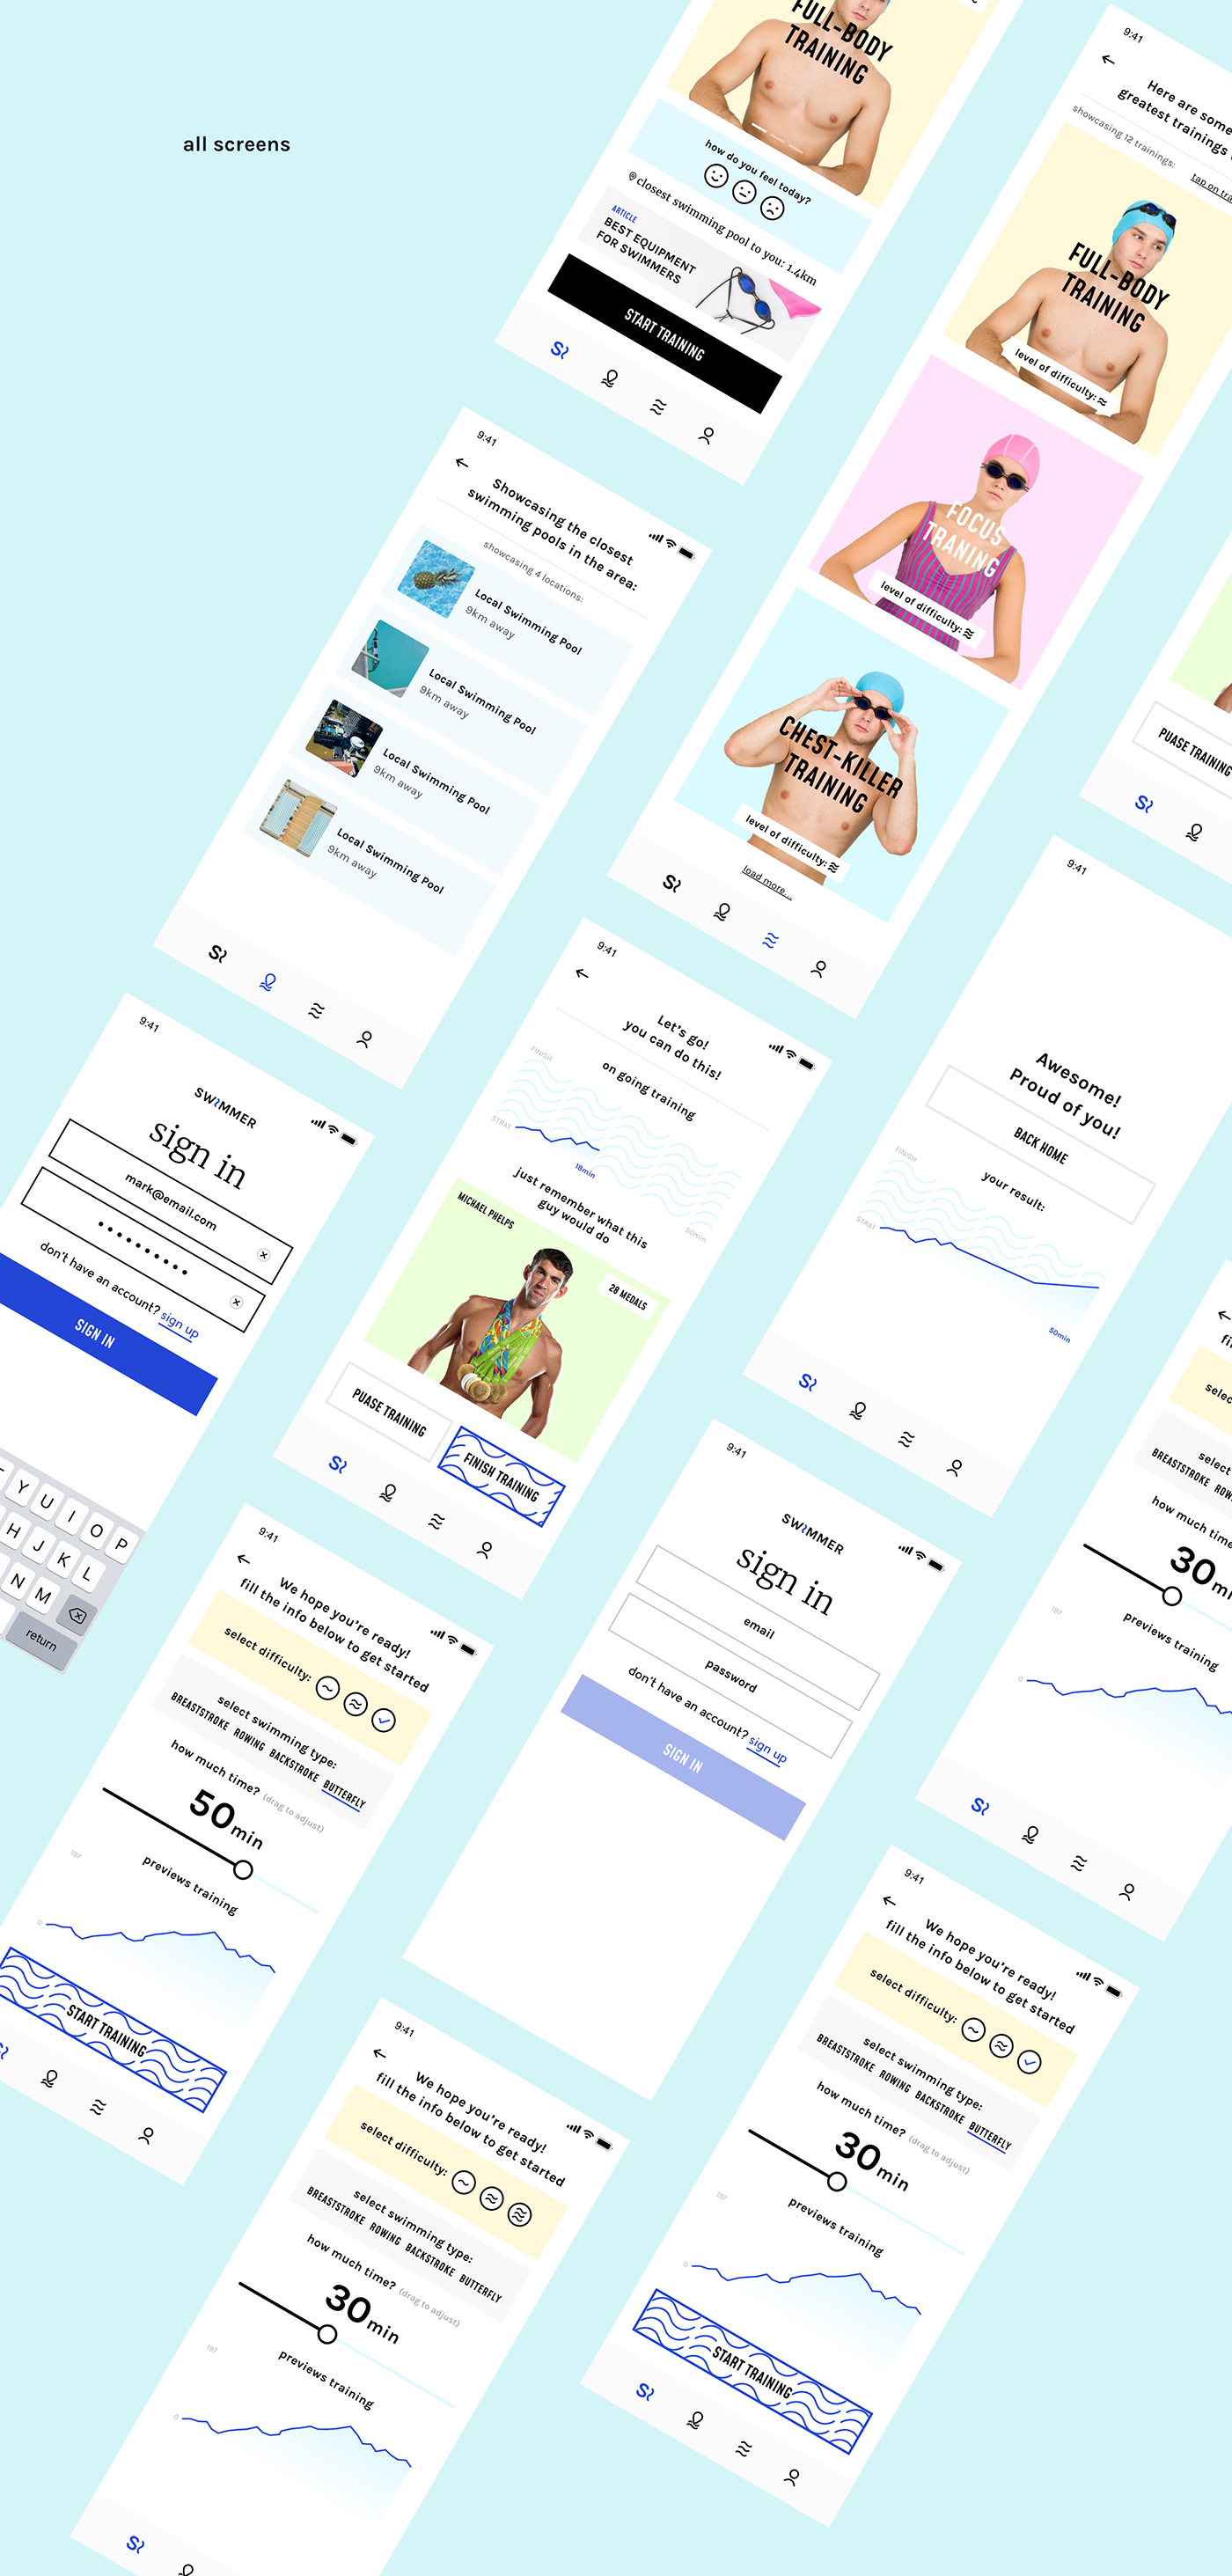 UI ux graphicdesign mobile ios adobexd UserInterface UserExperiance Appdesign app